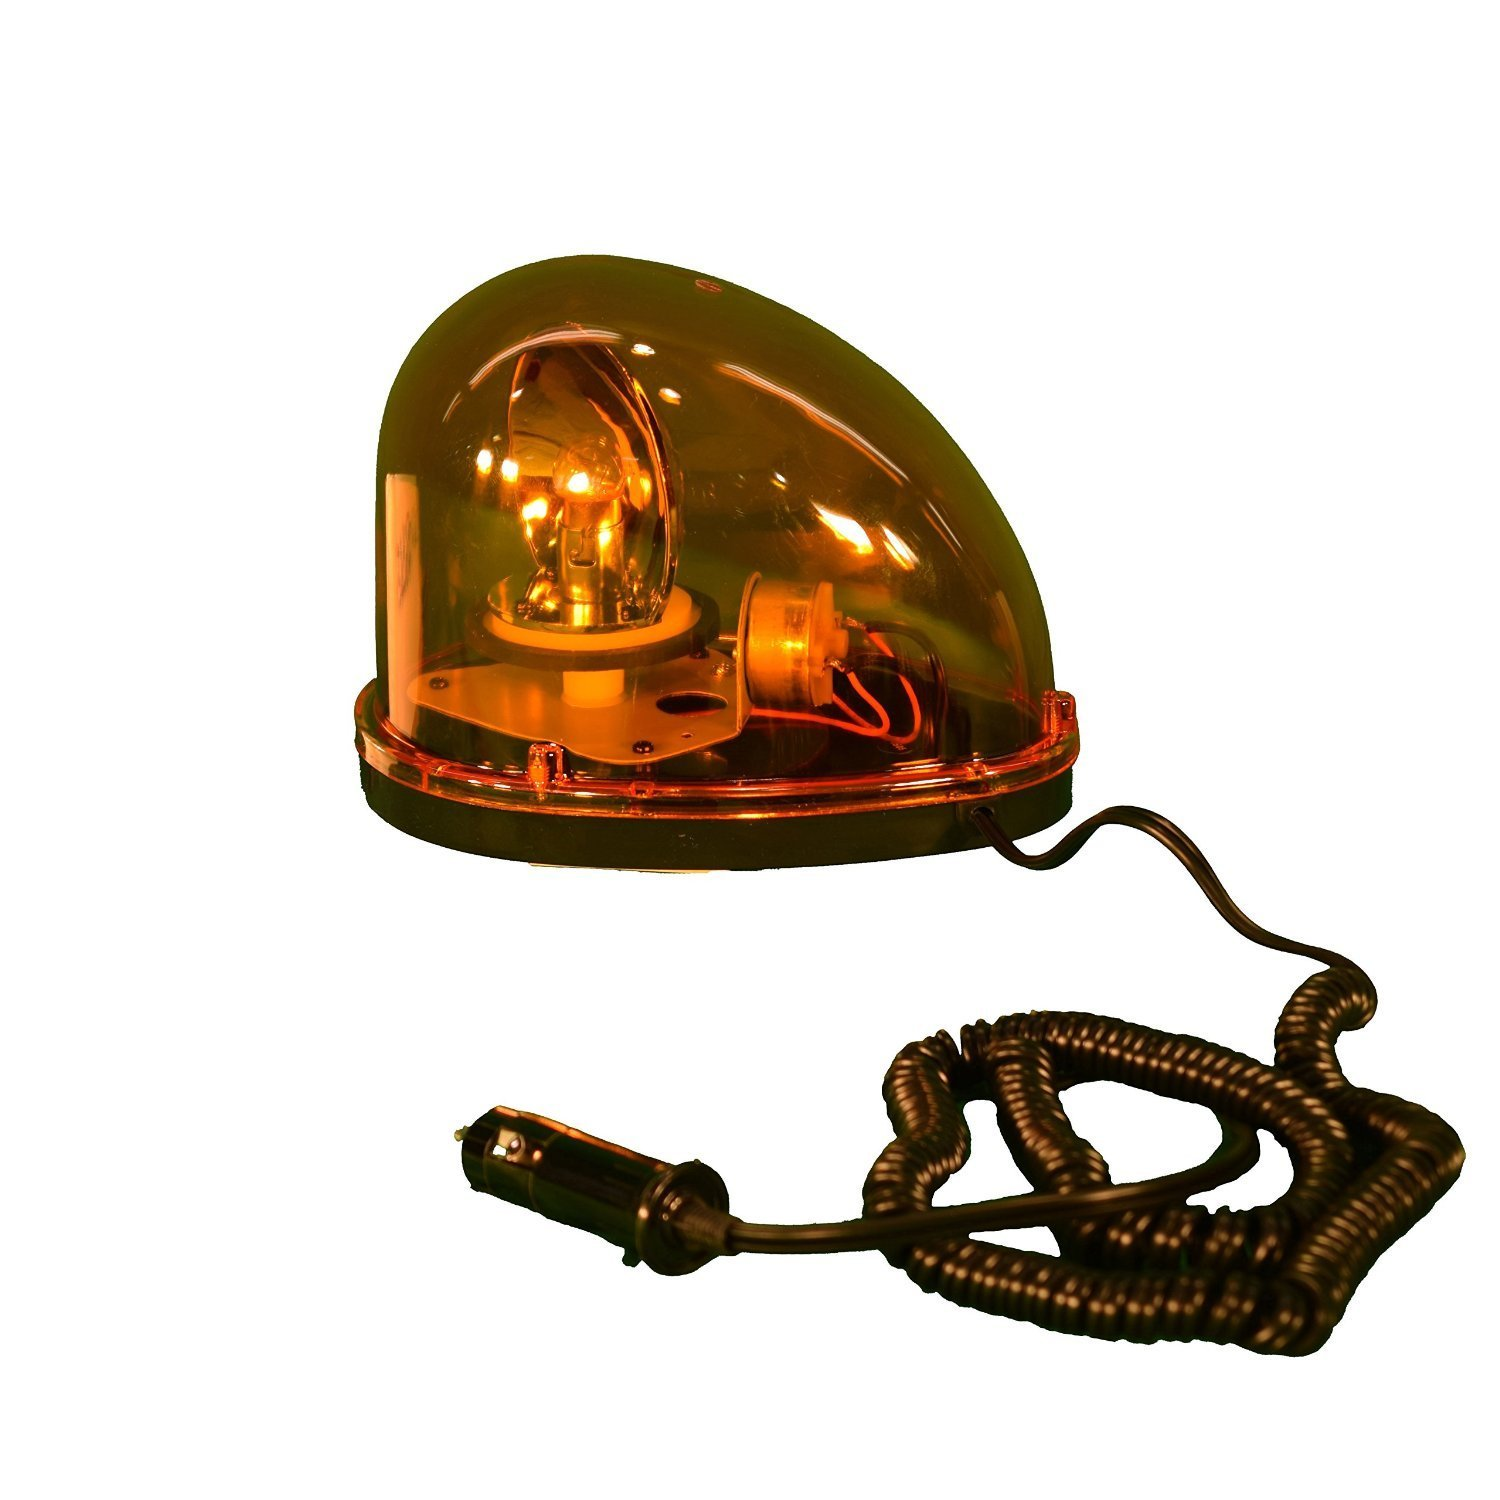 5 Diameter x 5 Height Amber Fortune PL-300AJ Battery Powered Ultra Bright LED Standard Police Beacon